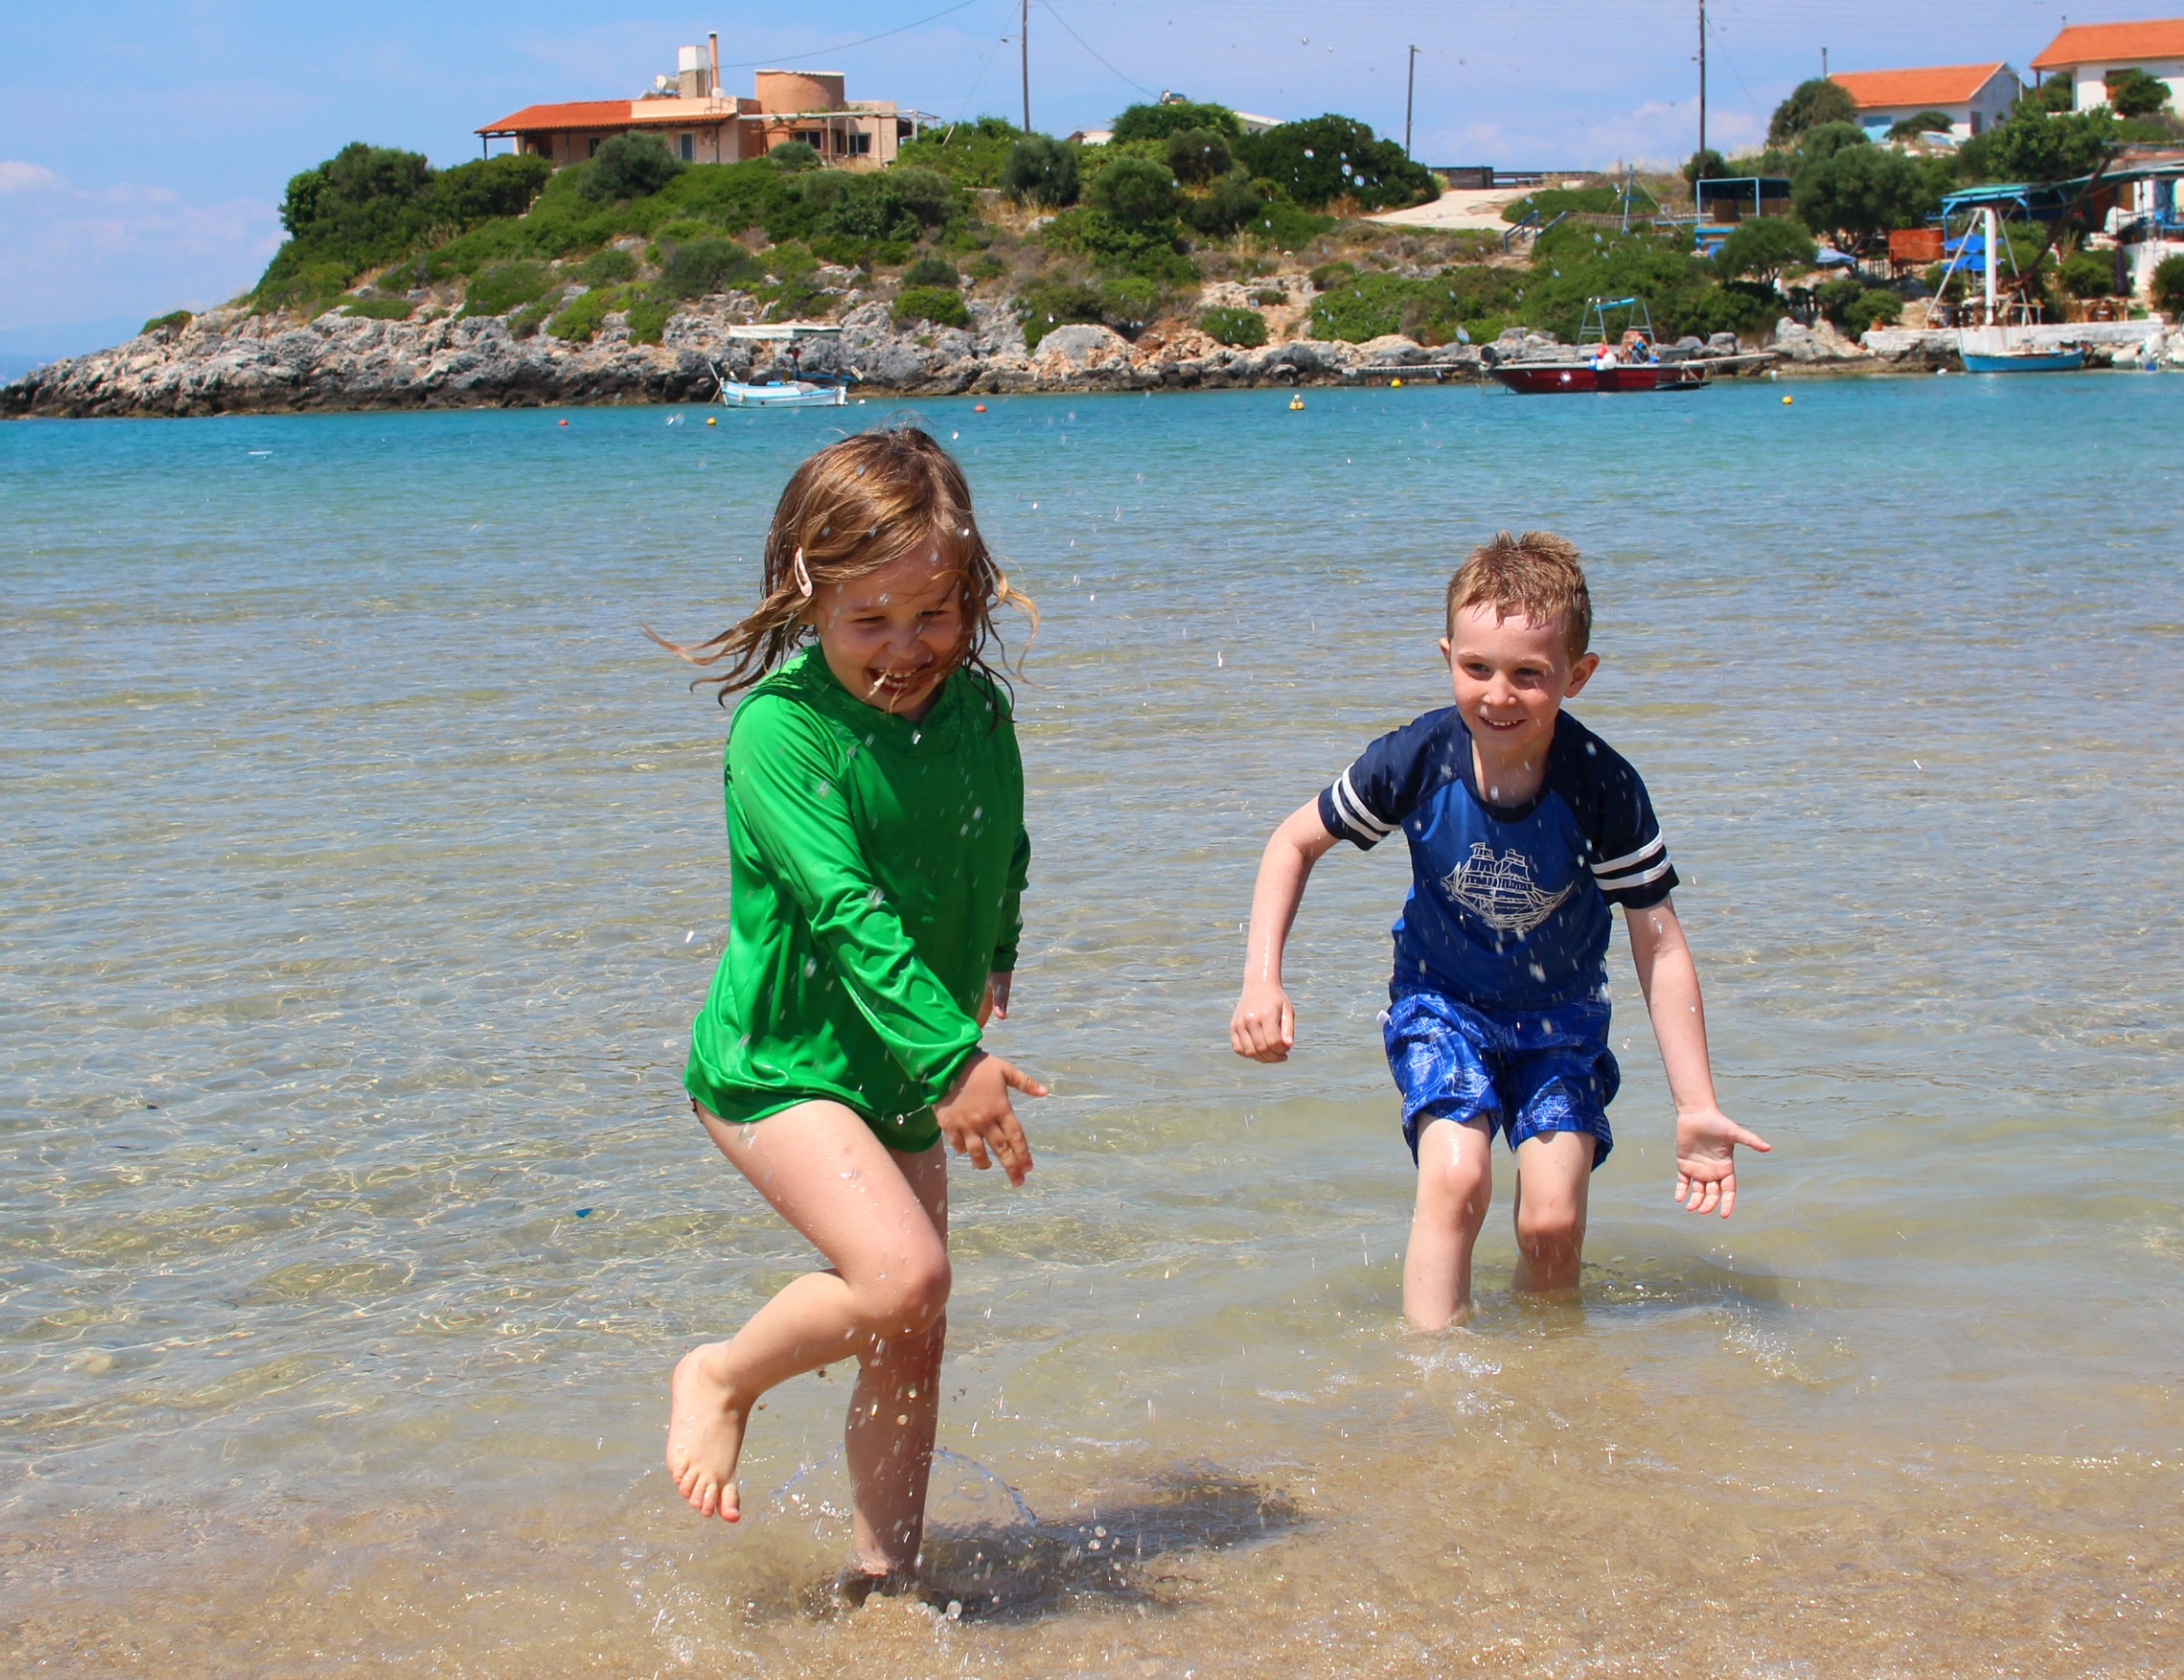 Water fights on Tersanas Beach, just 20m from Villa Kiara, our rental home